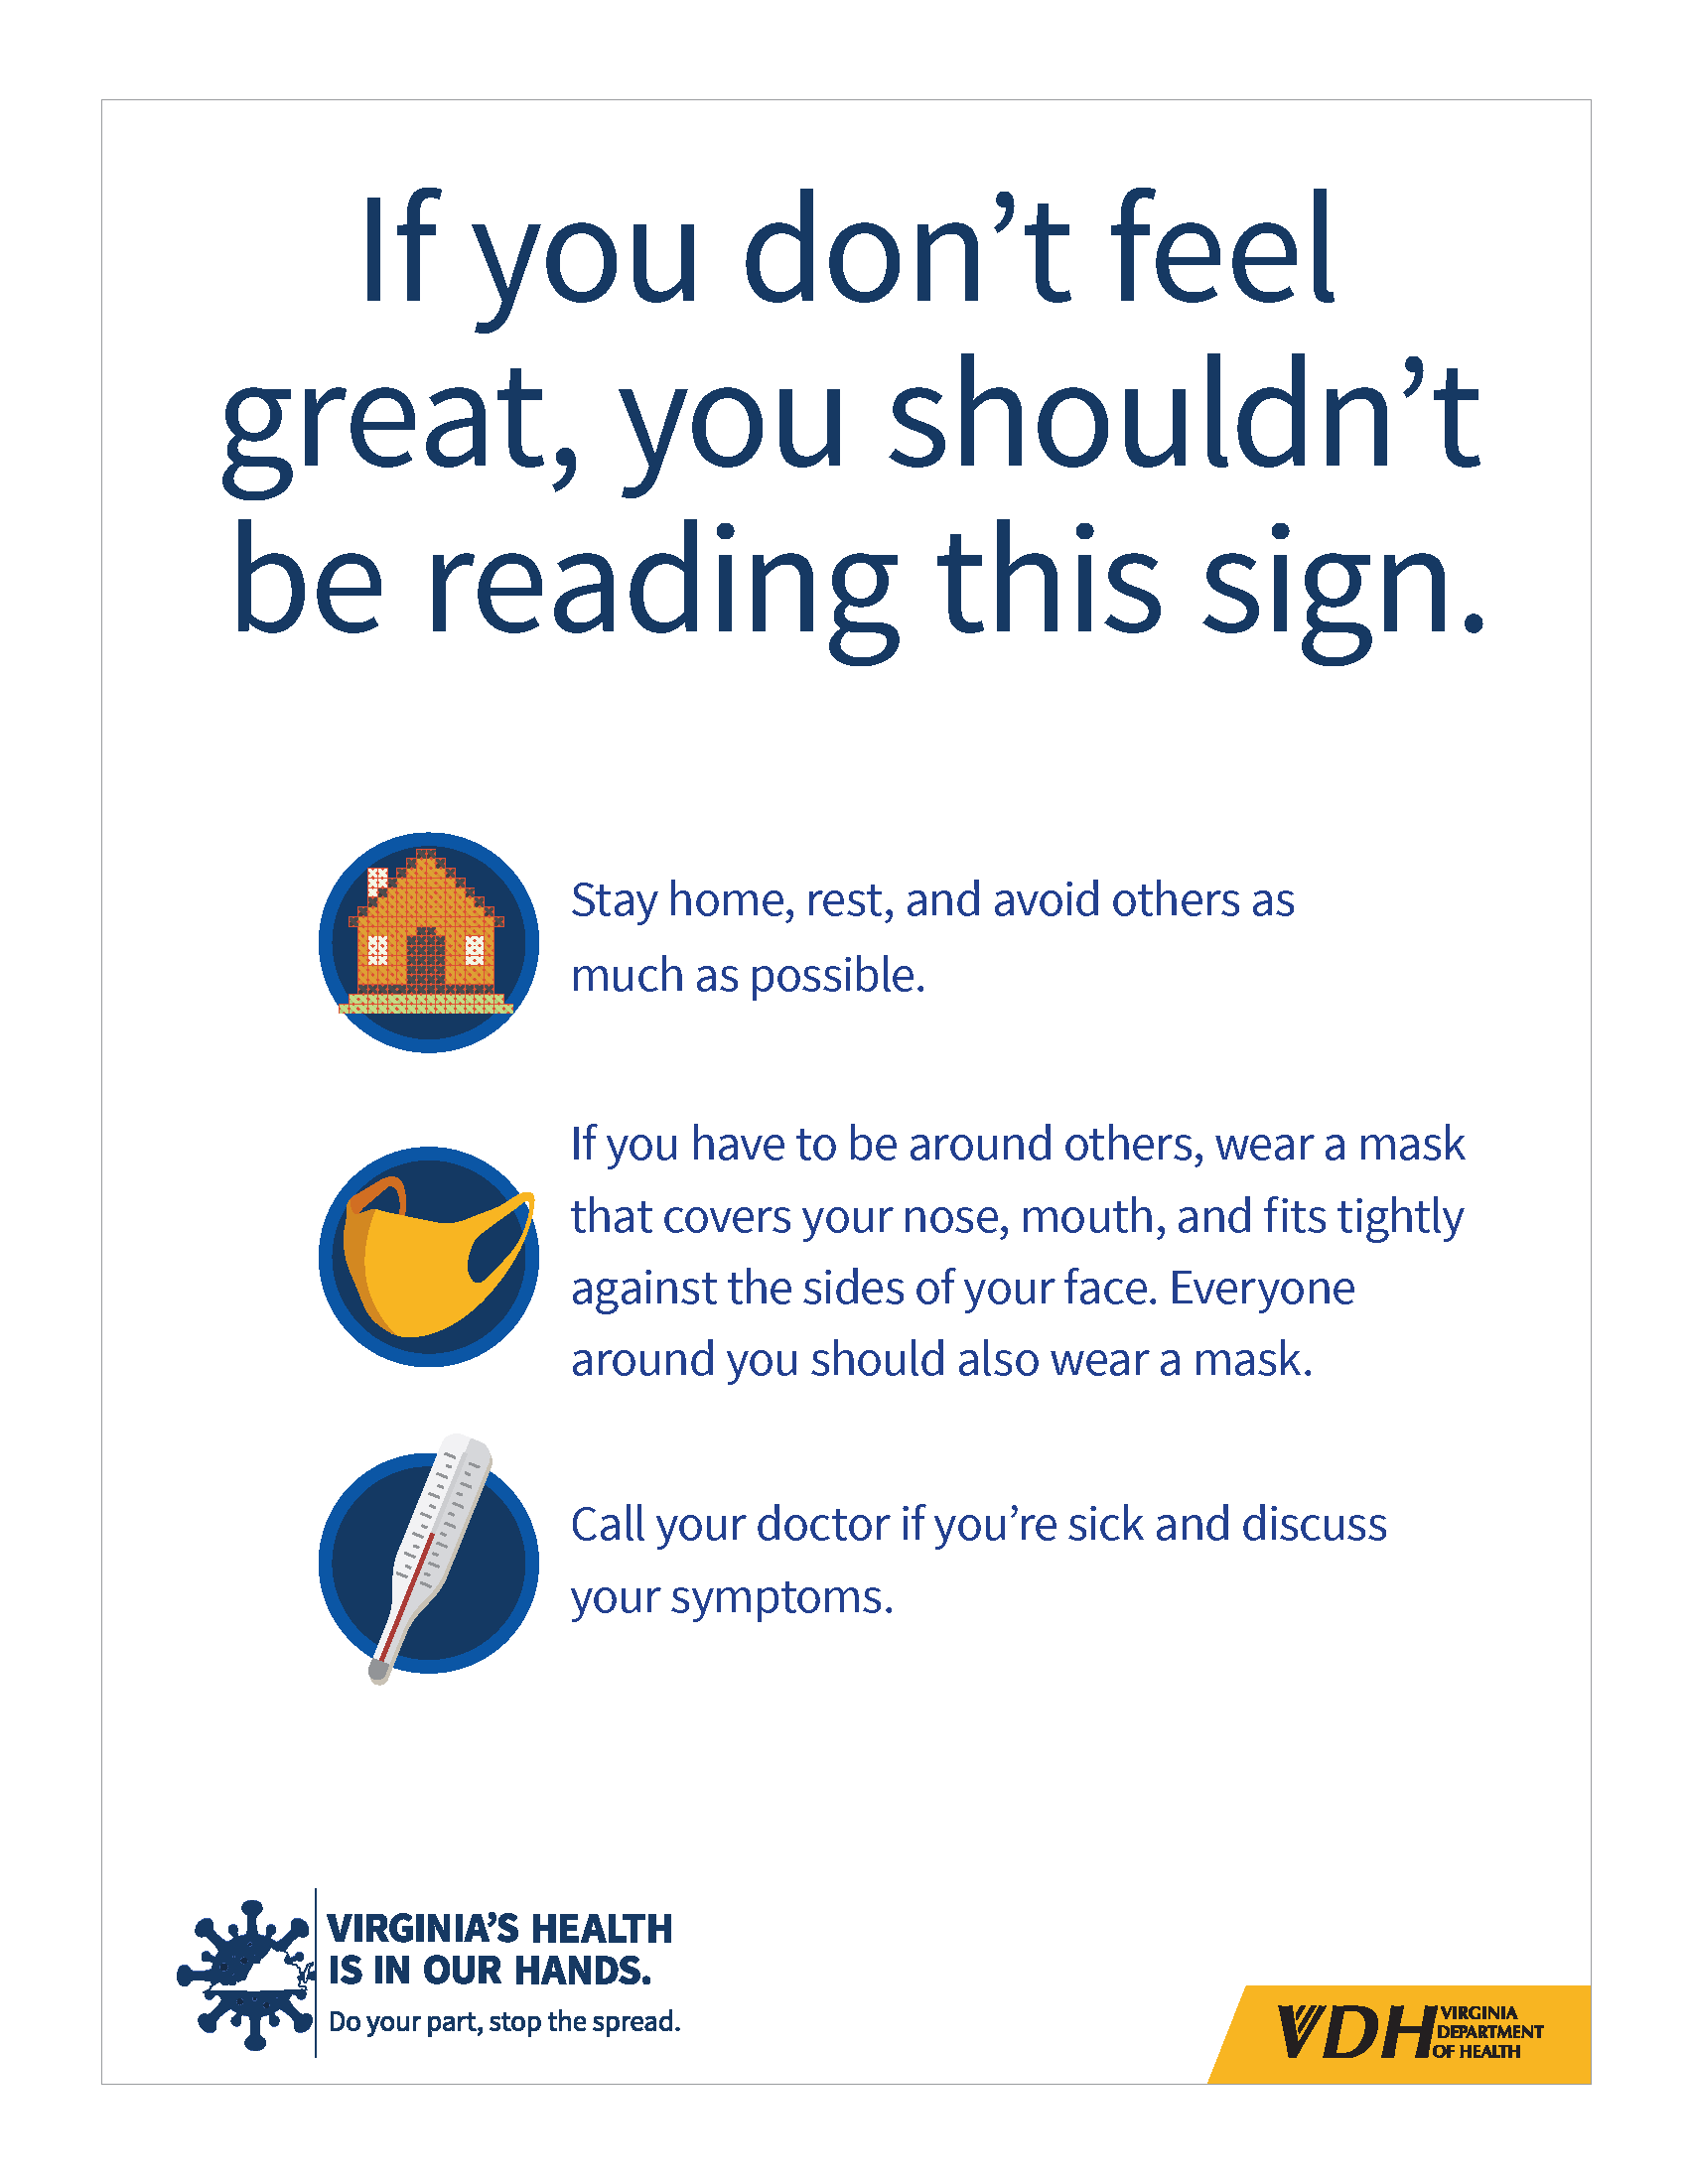 If you don't feel well you should not be reading this sign with white background